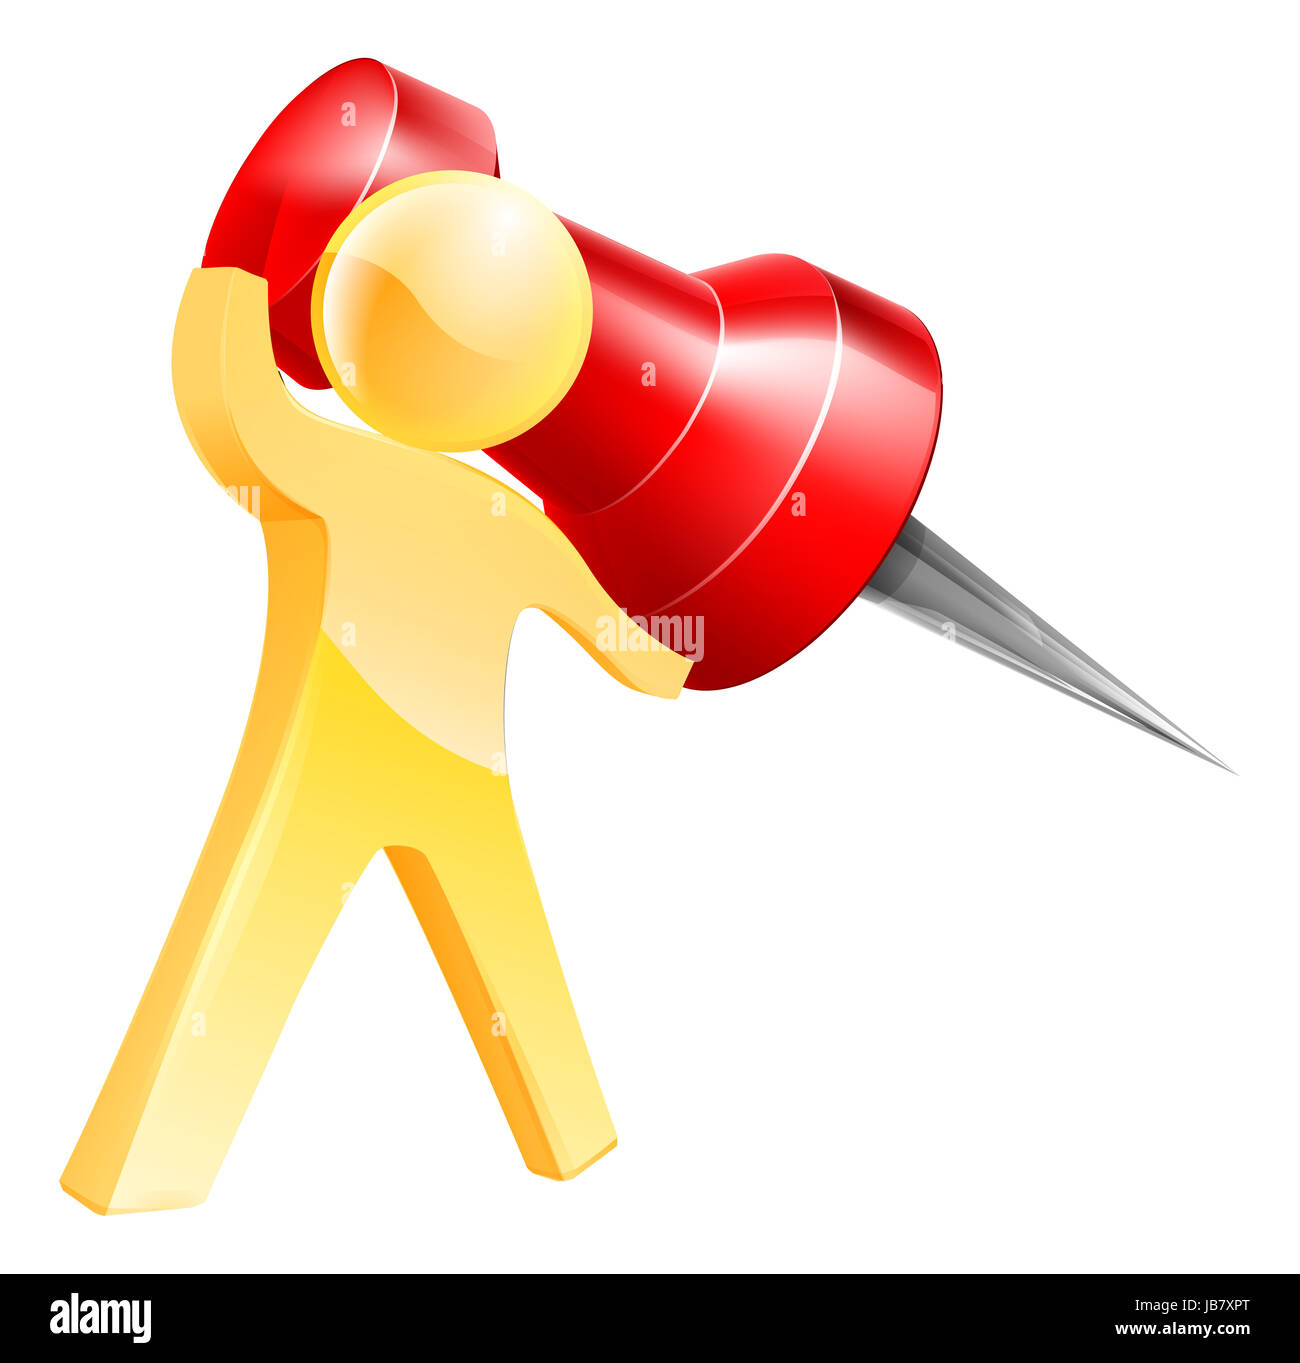 An illustration of a gold person pinning something with a giant map pin or thumb tack - Stock Image